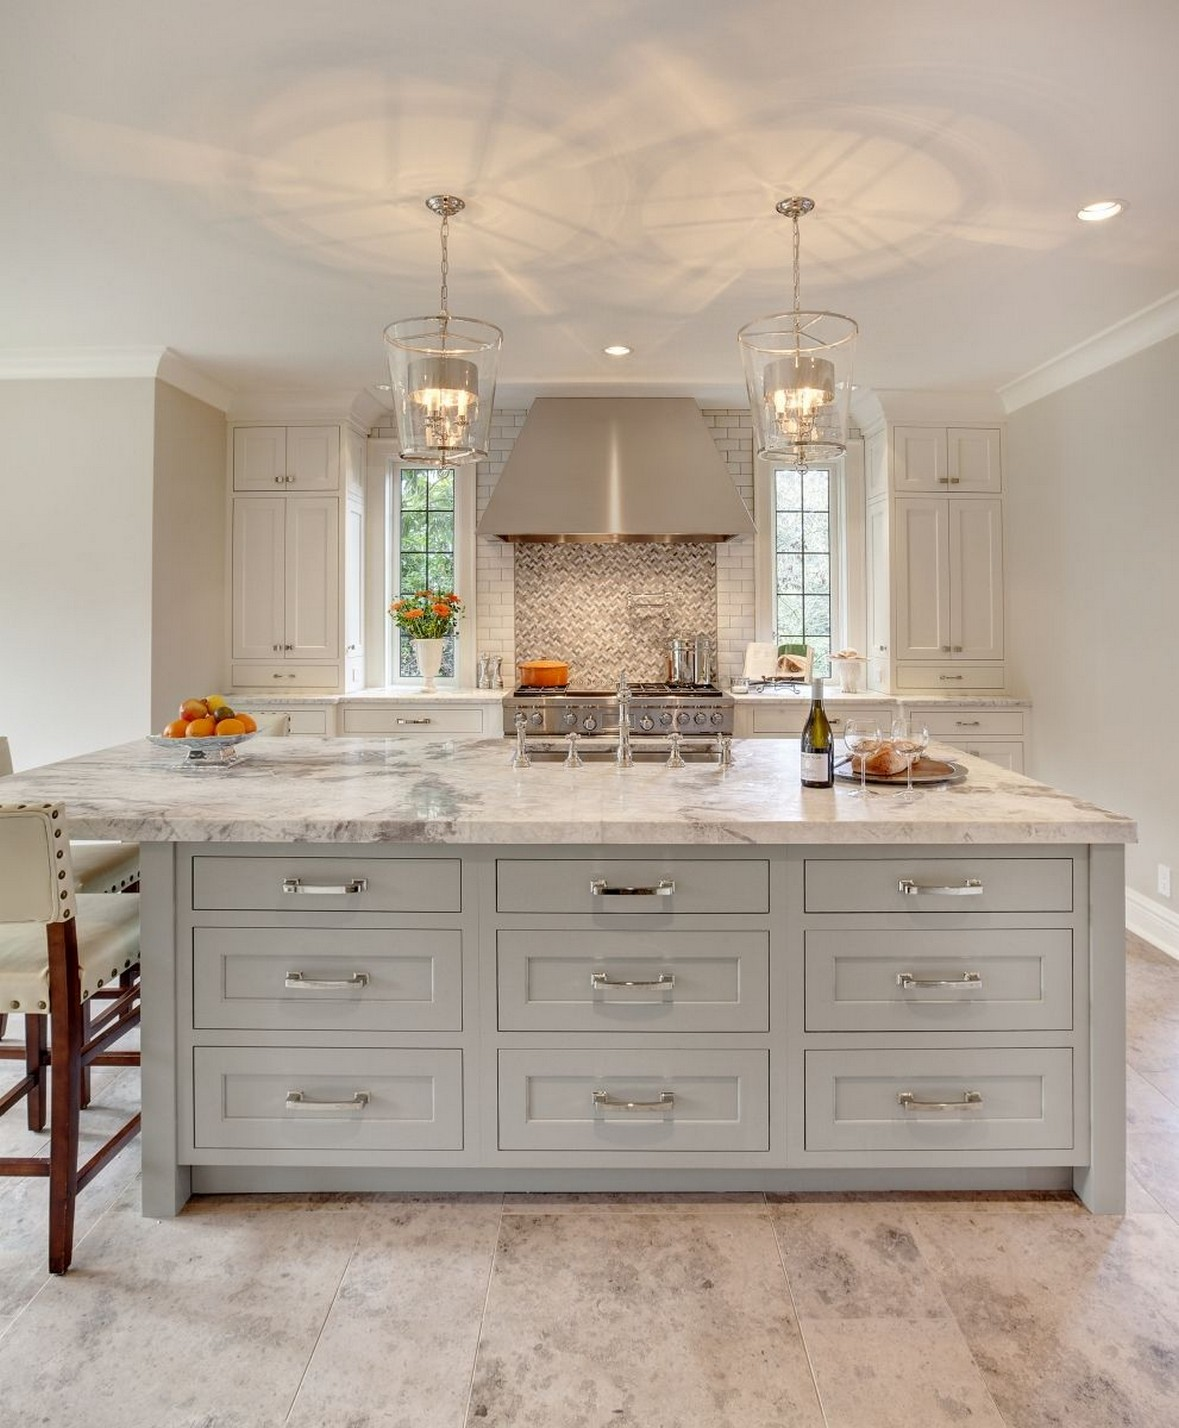 71 Painted Kitchen Cabinets Ideas For Home Decor 4